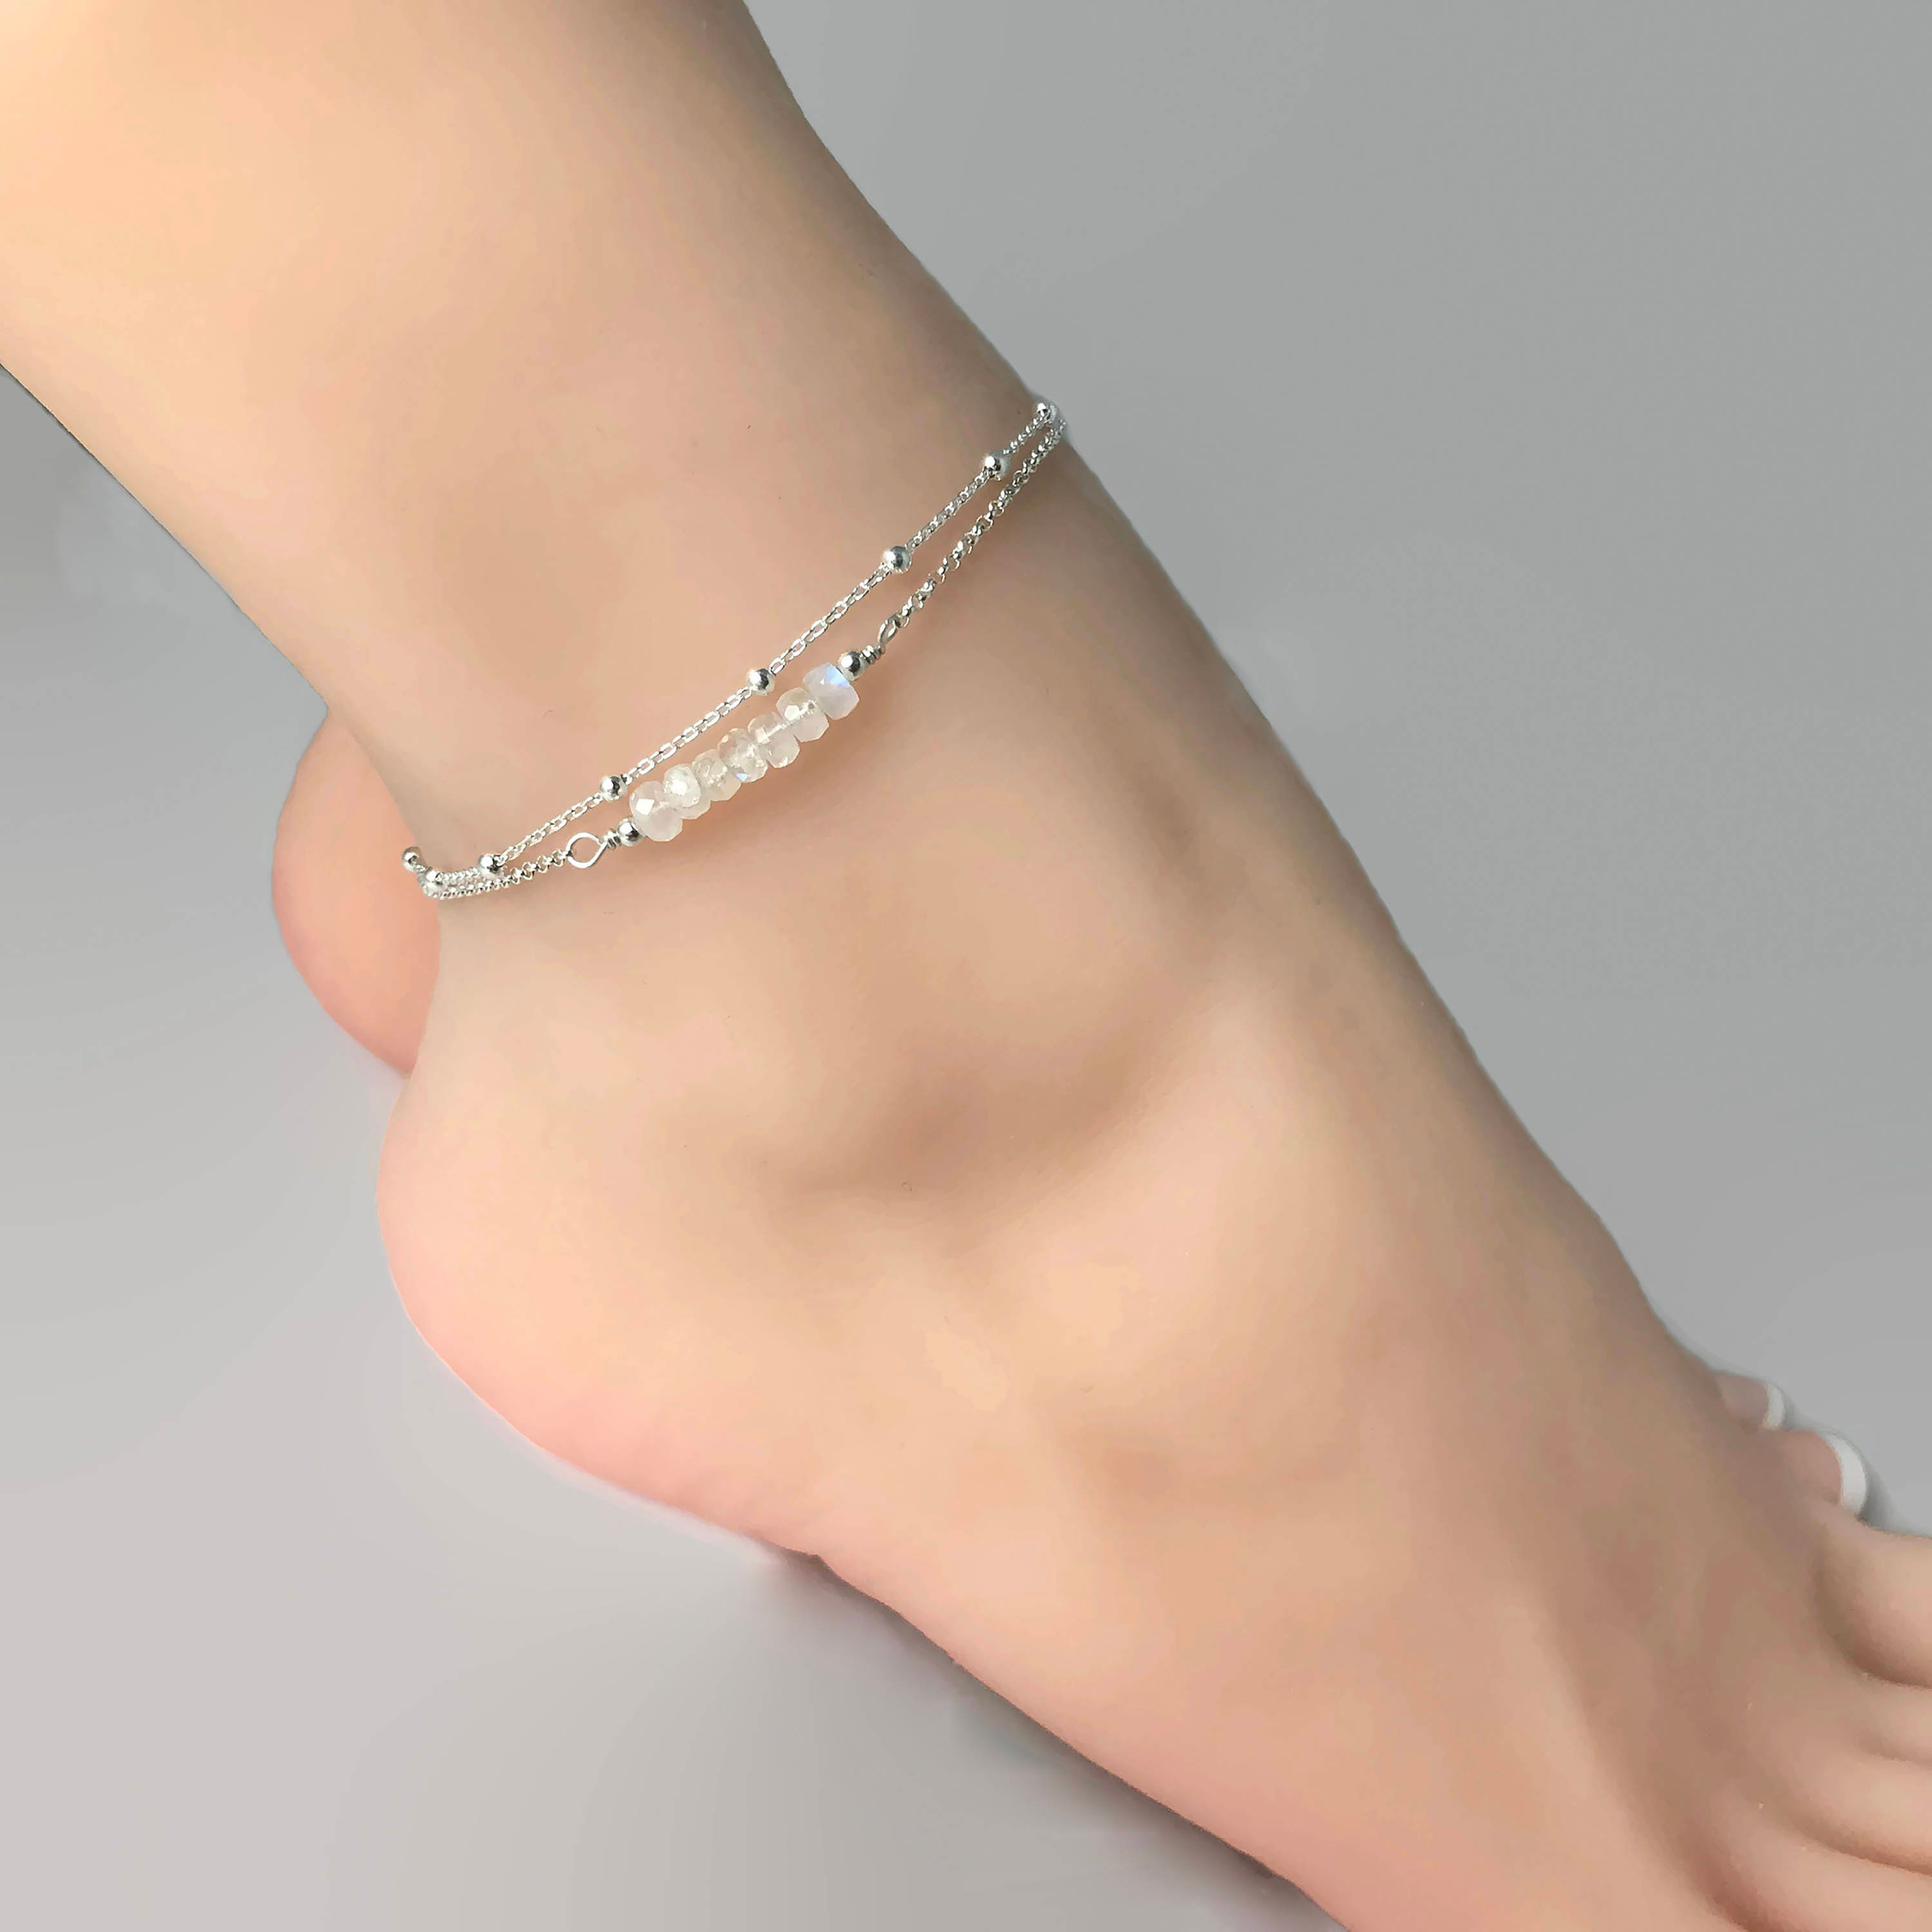 silver anklet to amazing designer elegance looks anklets create buy online adding products